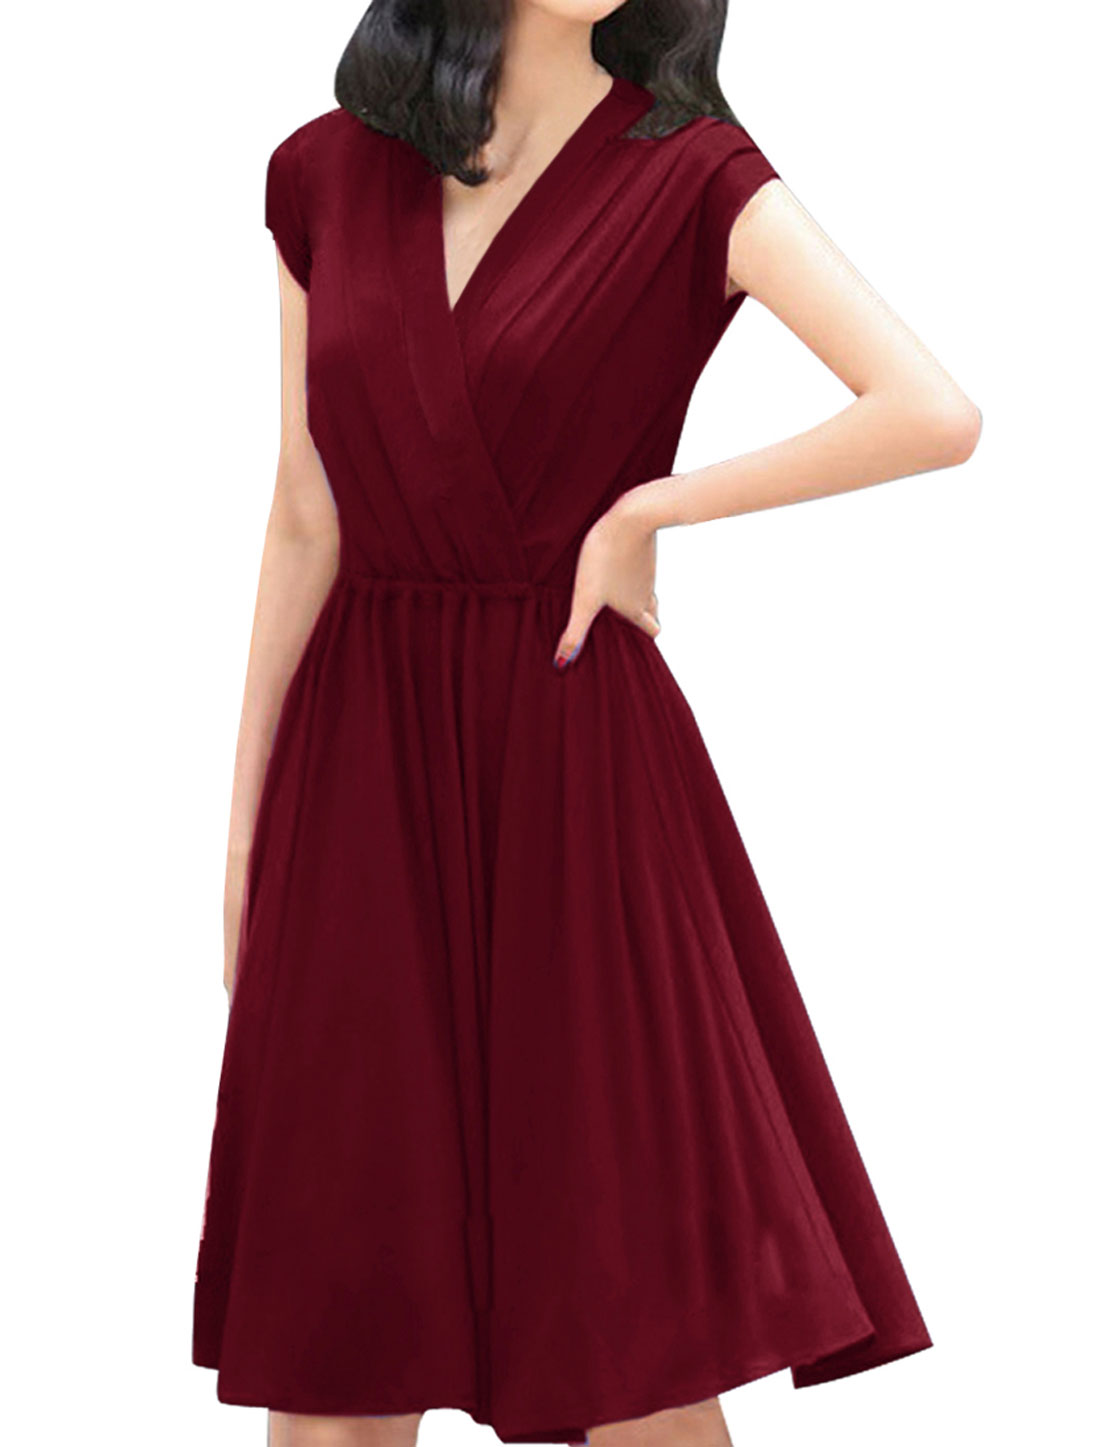 Woman Elastic Waist Pure Burgundy Knee-Length Dress L